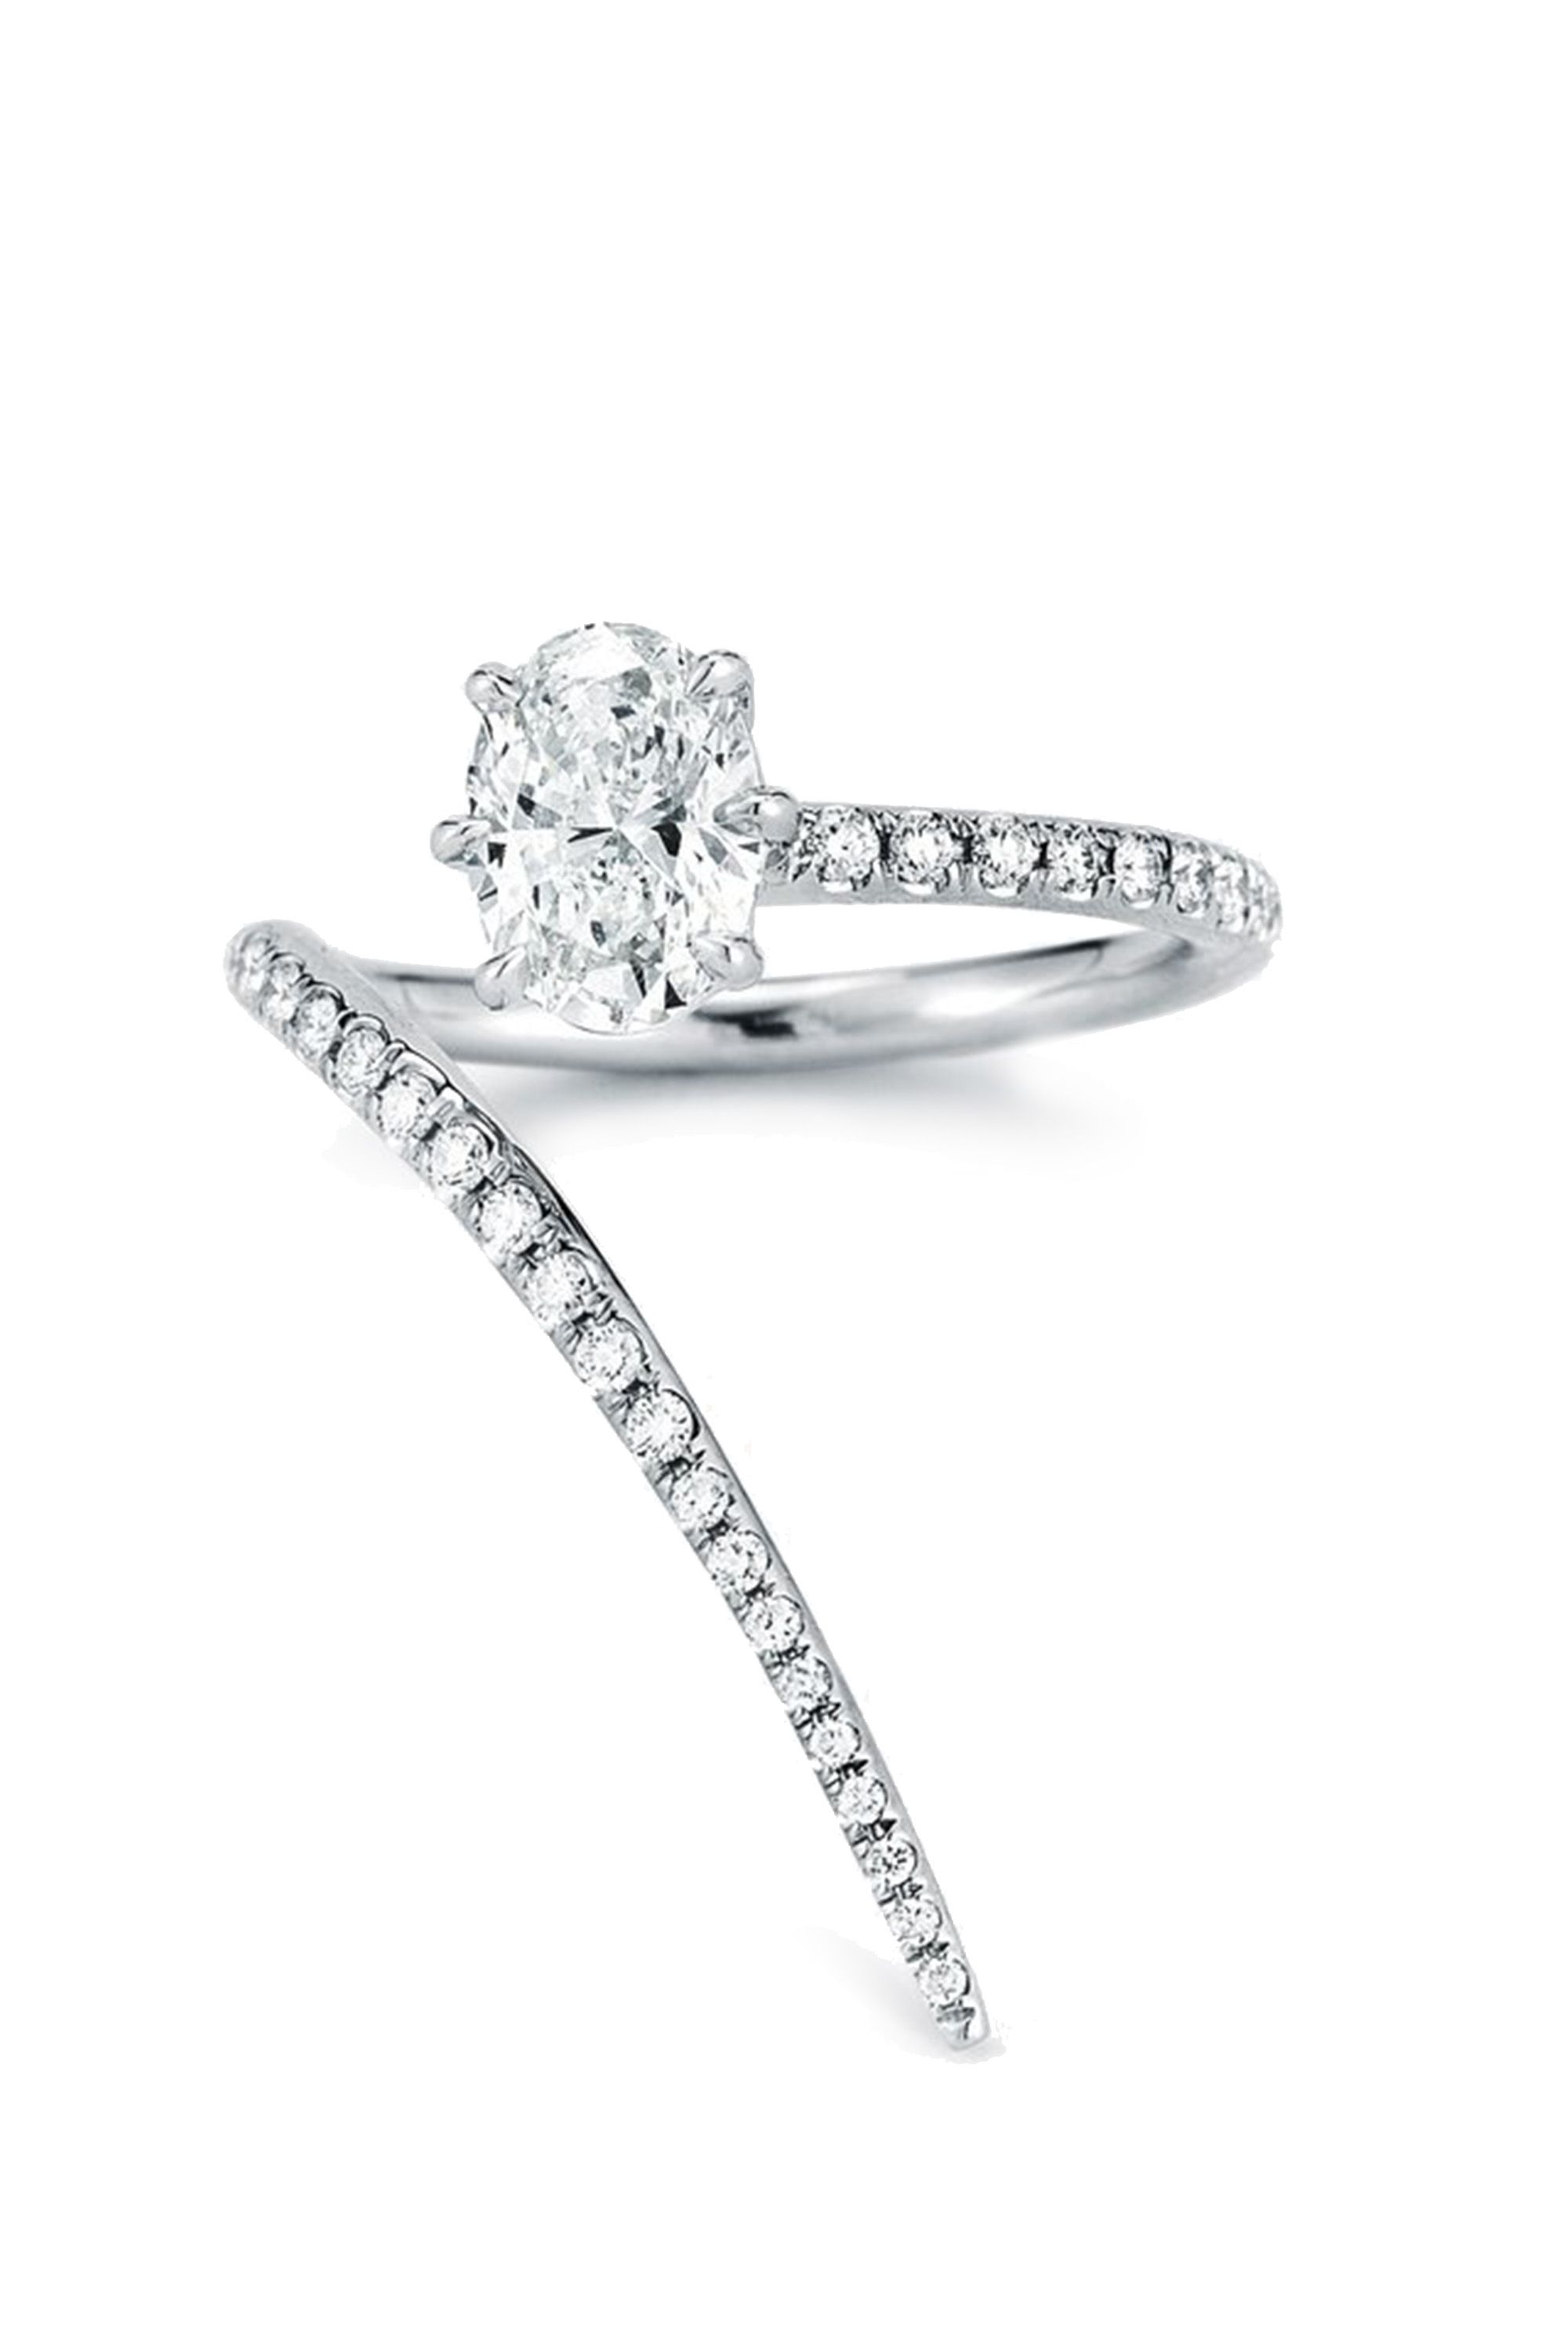 engagement cushion sterling silver cut carat t zirconia walmart com miabella rings halo ring gorgeous and ip g w cubic diamond round double